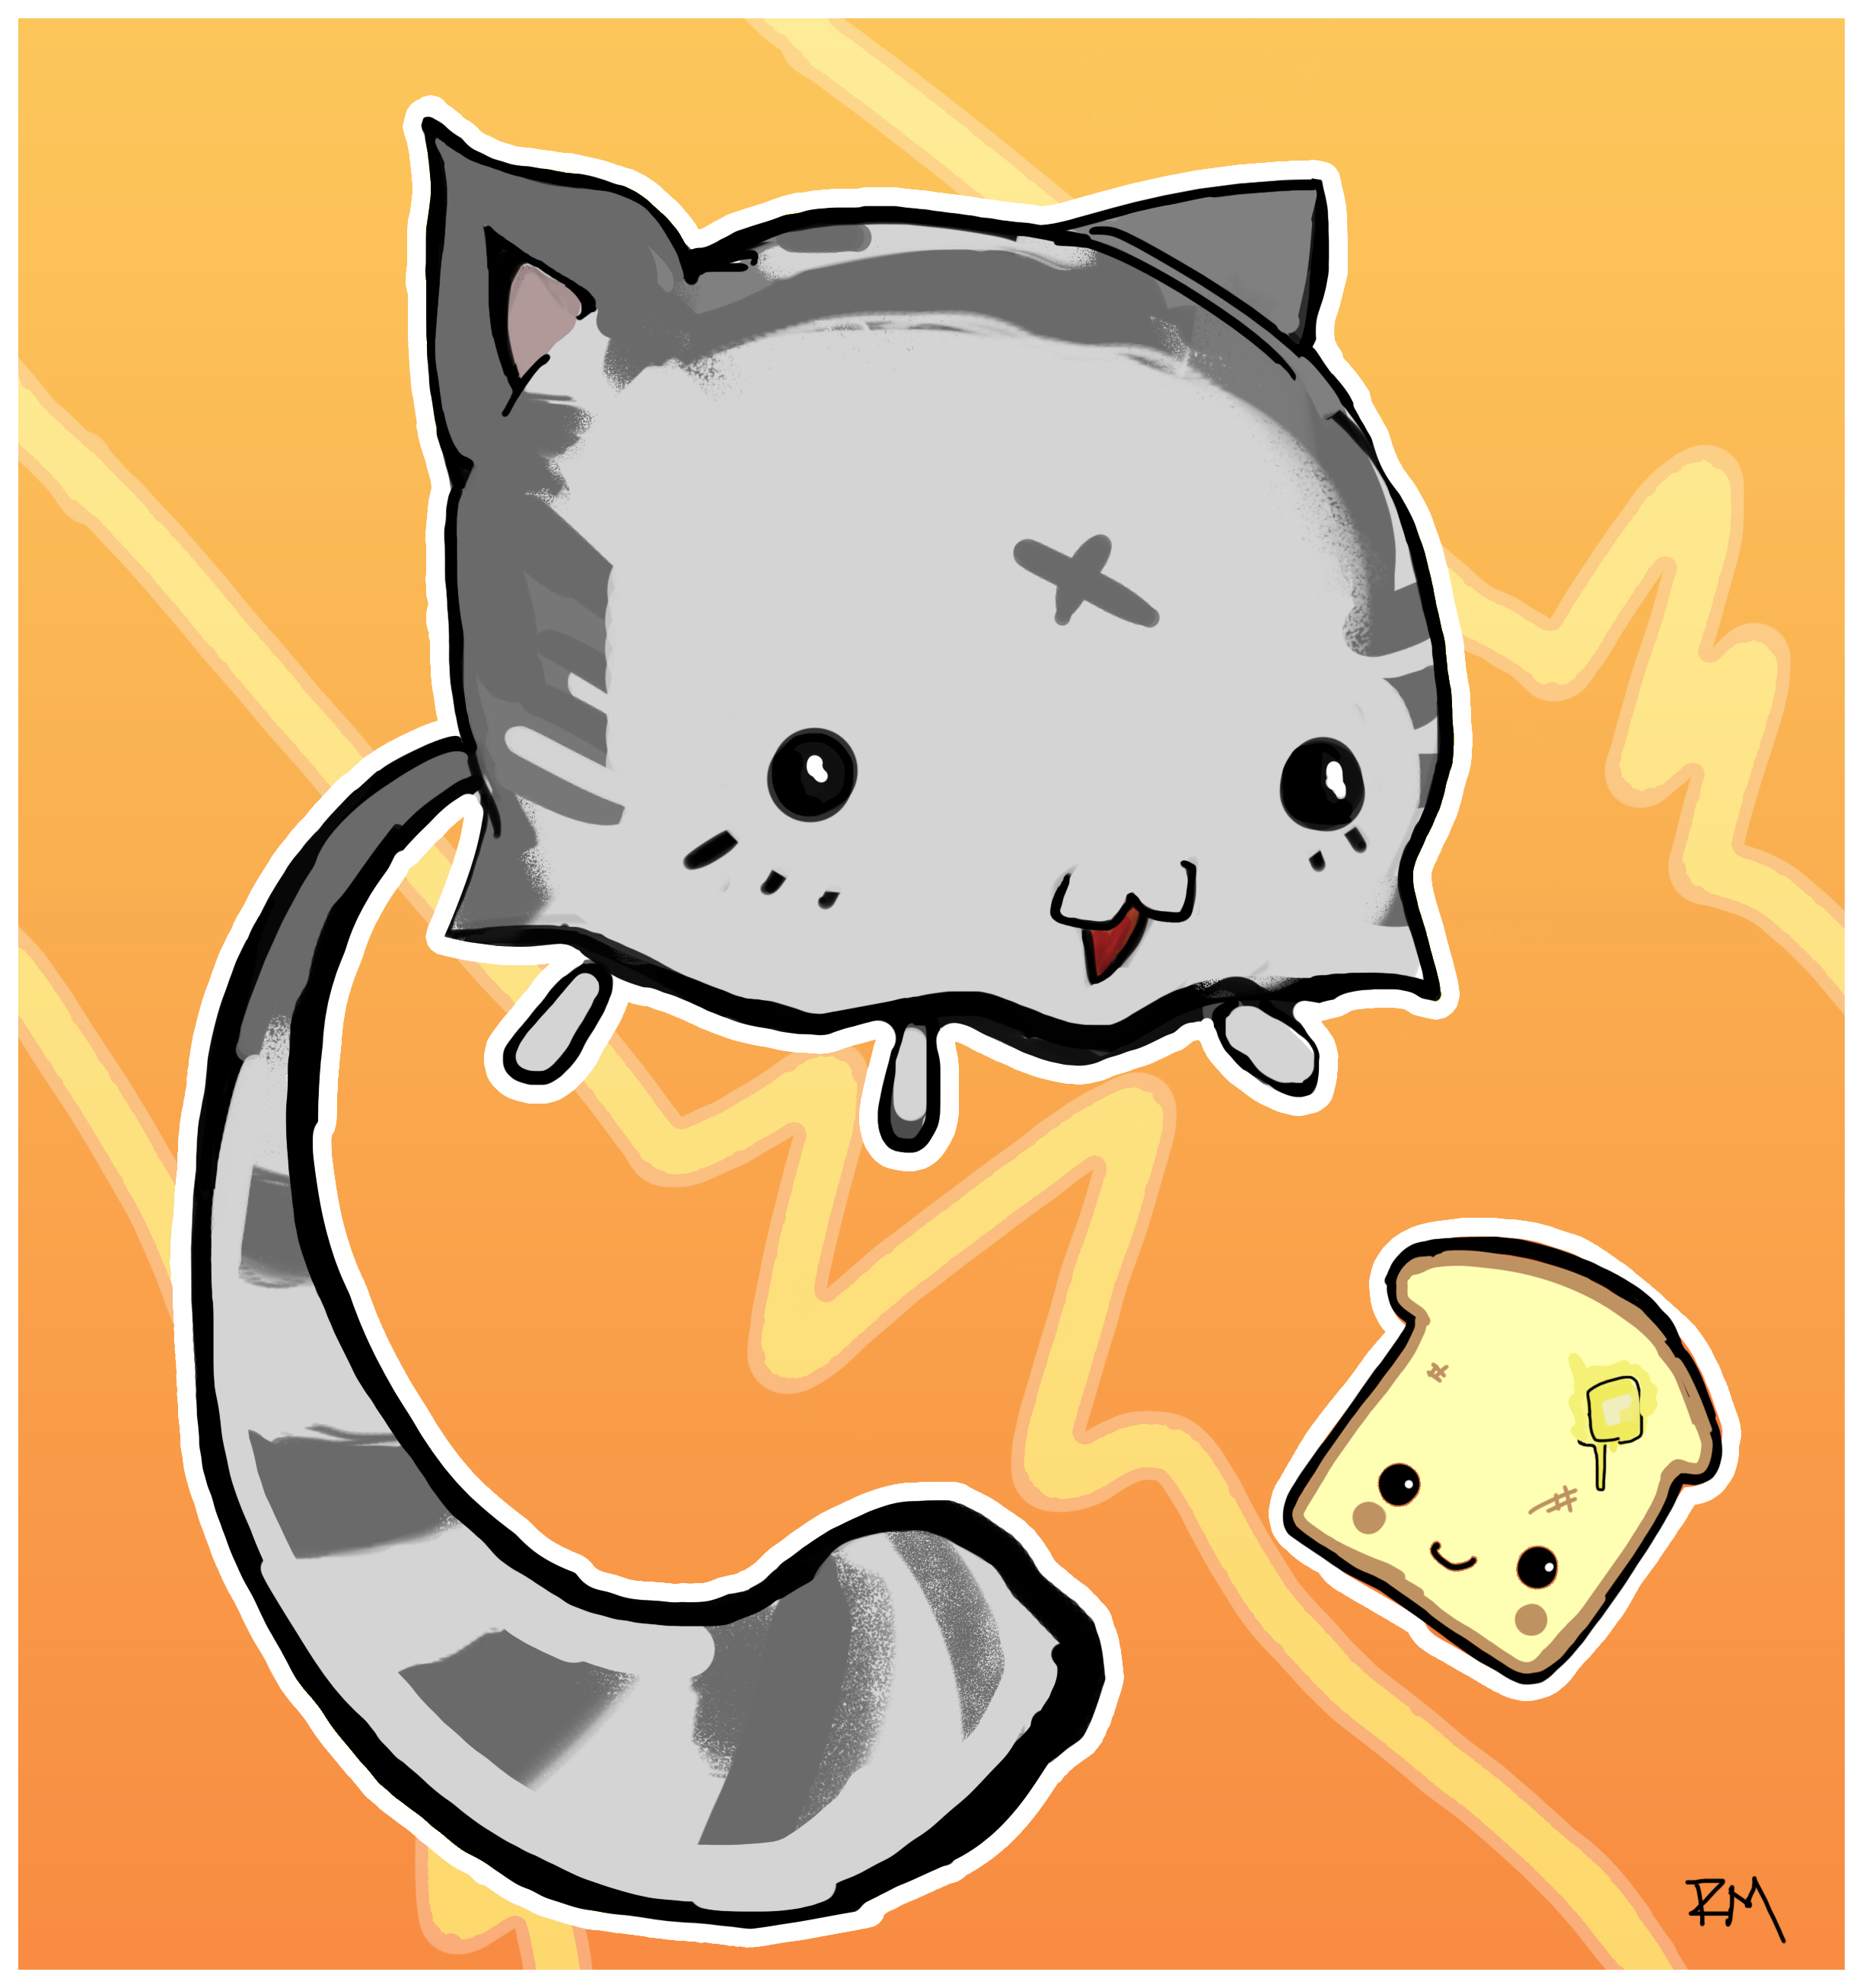 kutekittykatkitten and toast.jpg